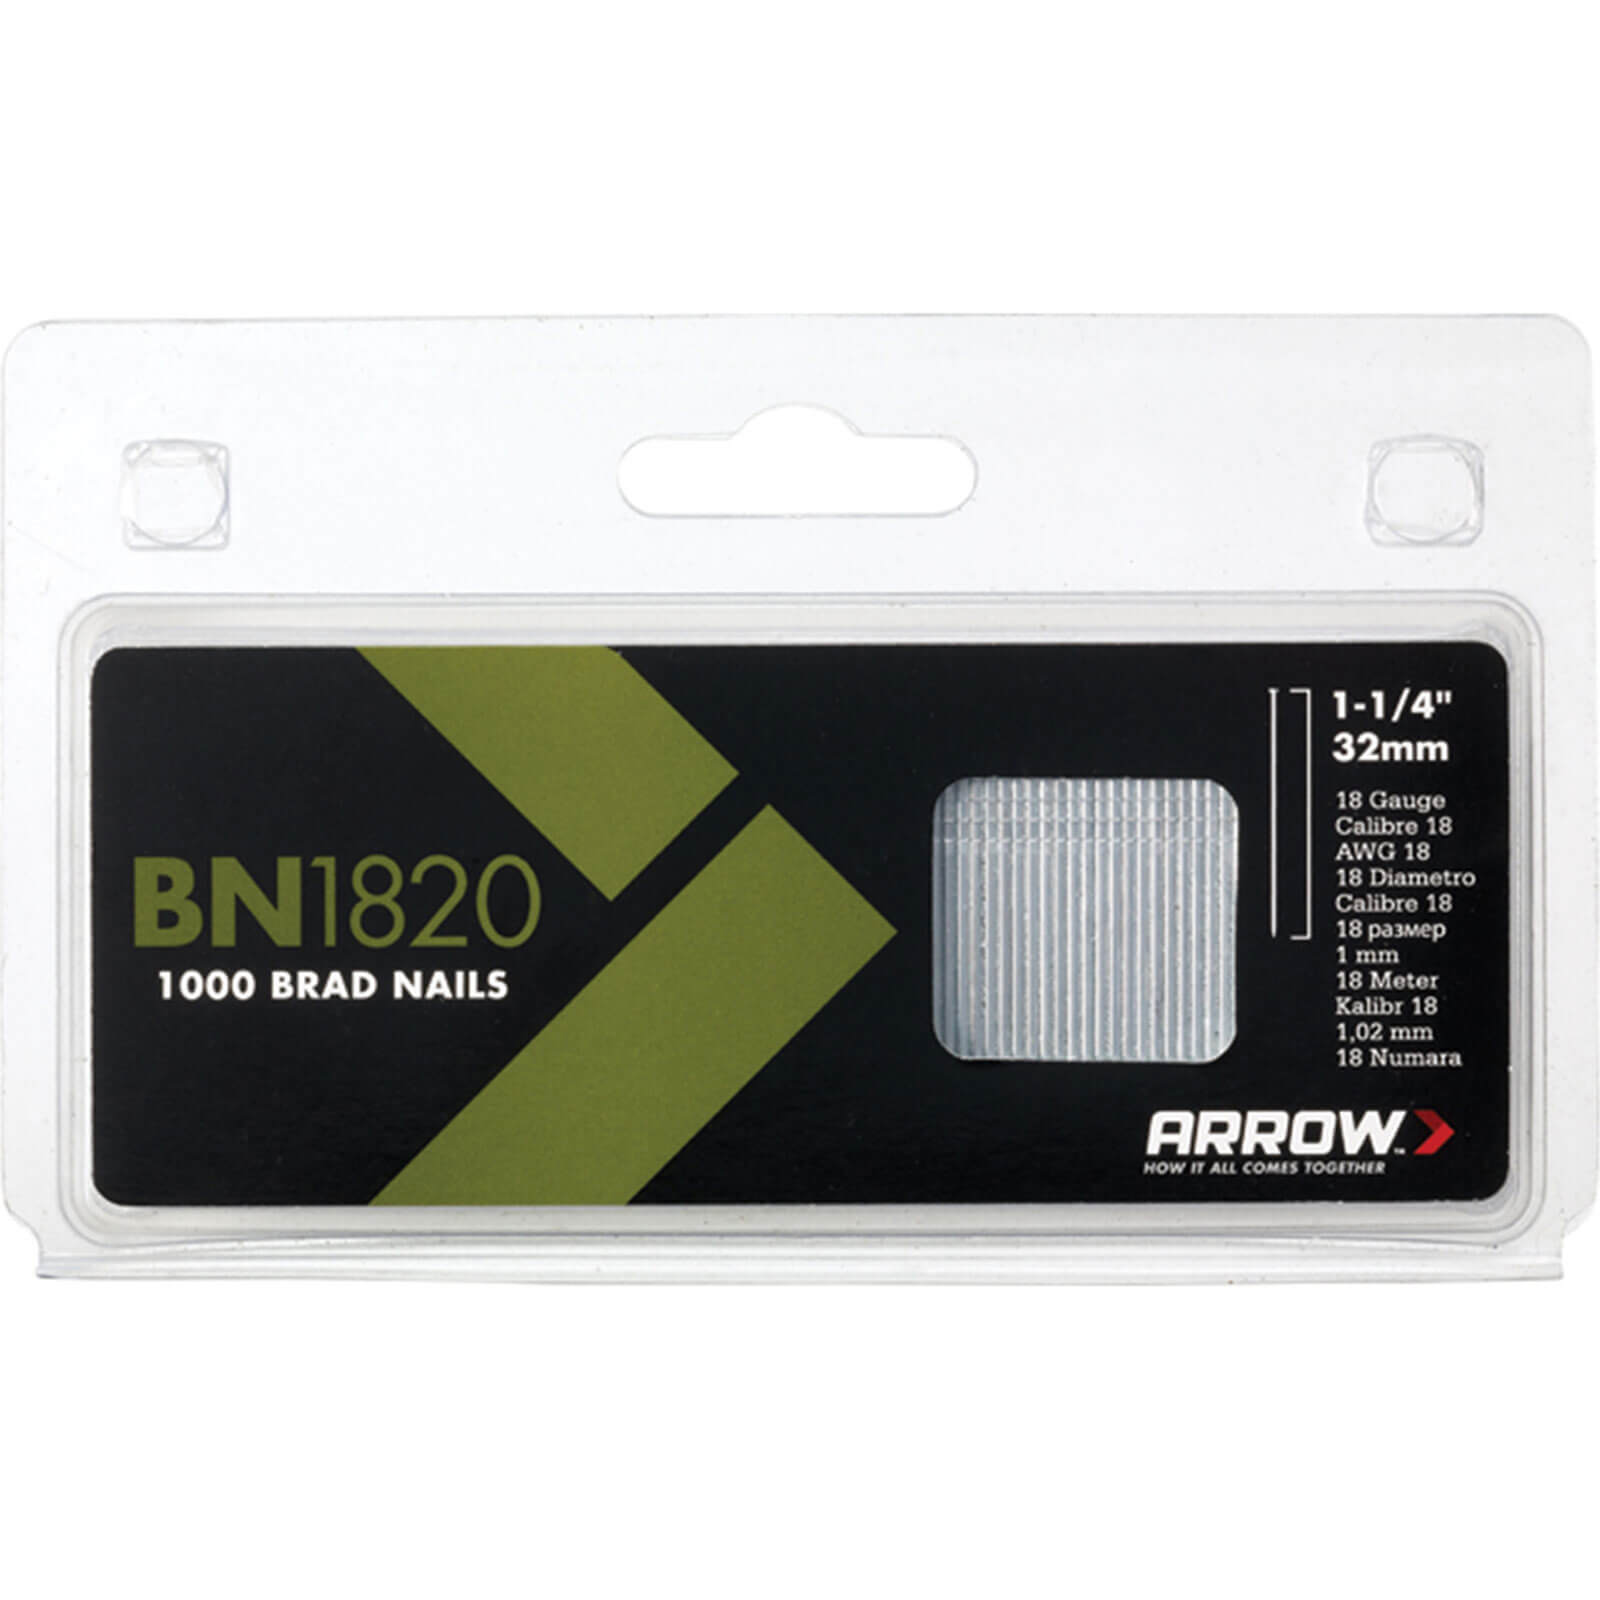 Arrow BN1820 Brad Nails Pack of 2000